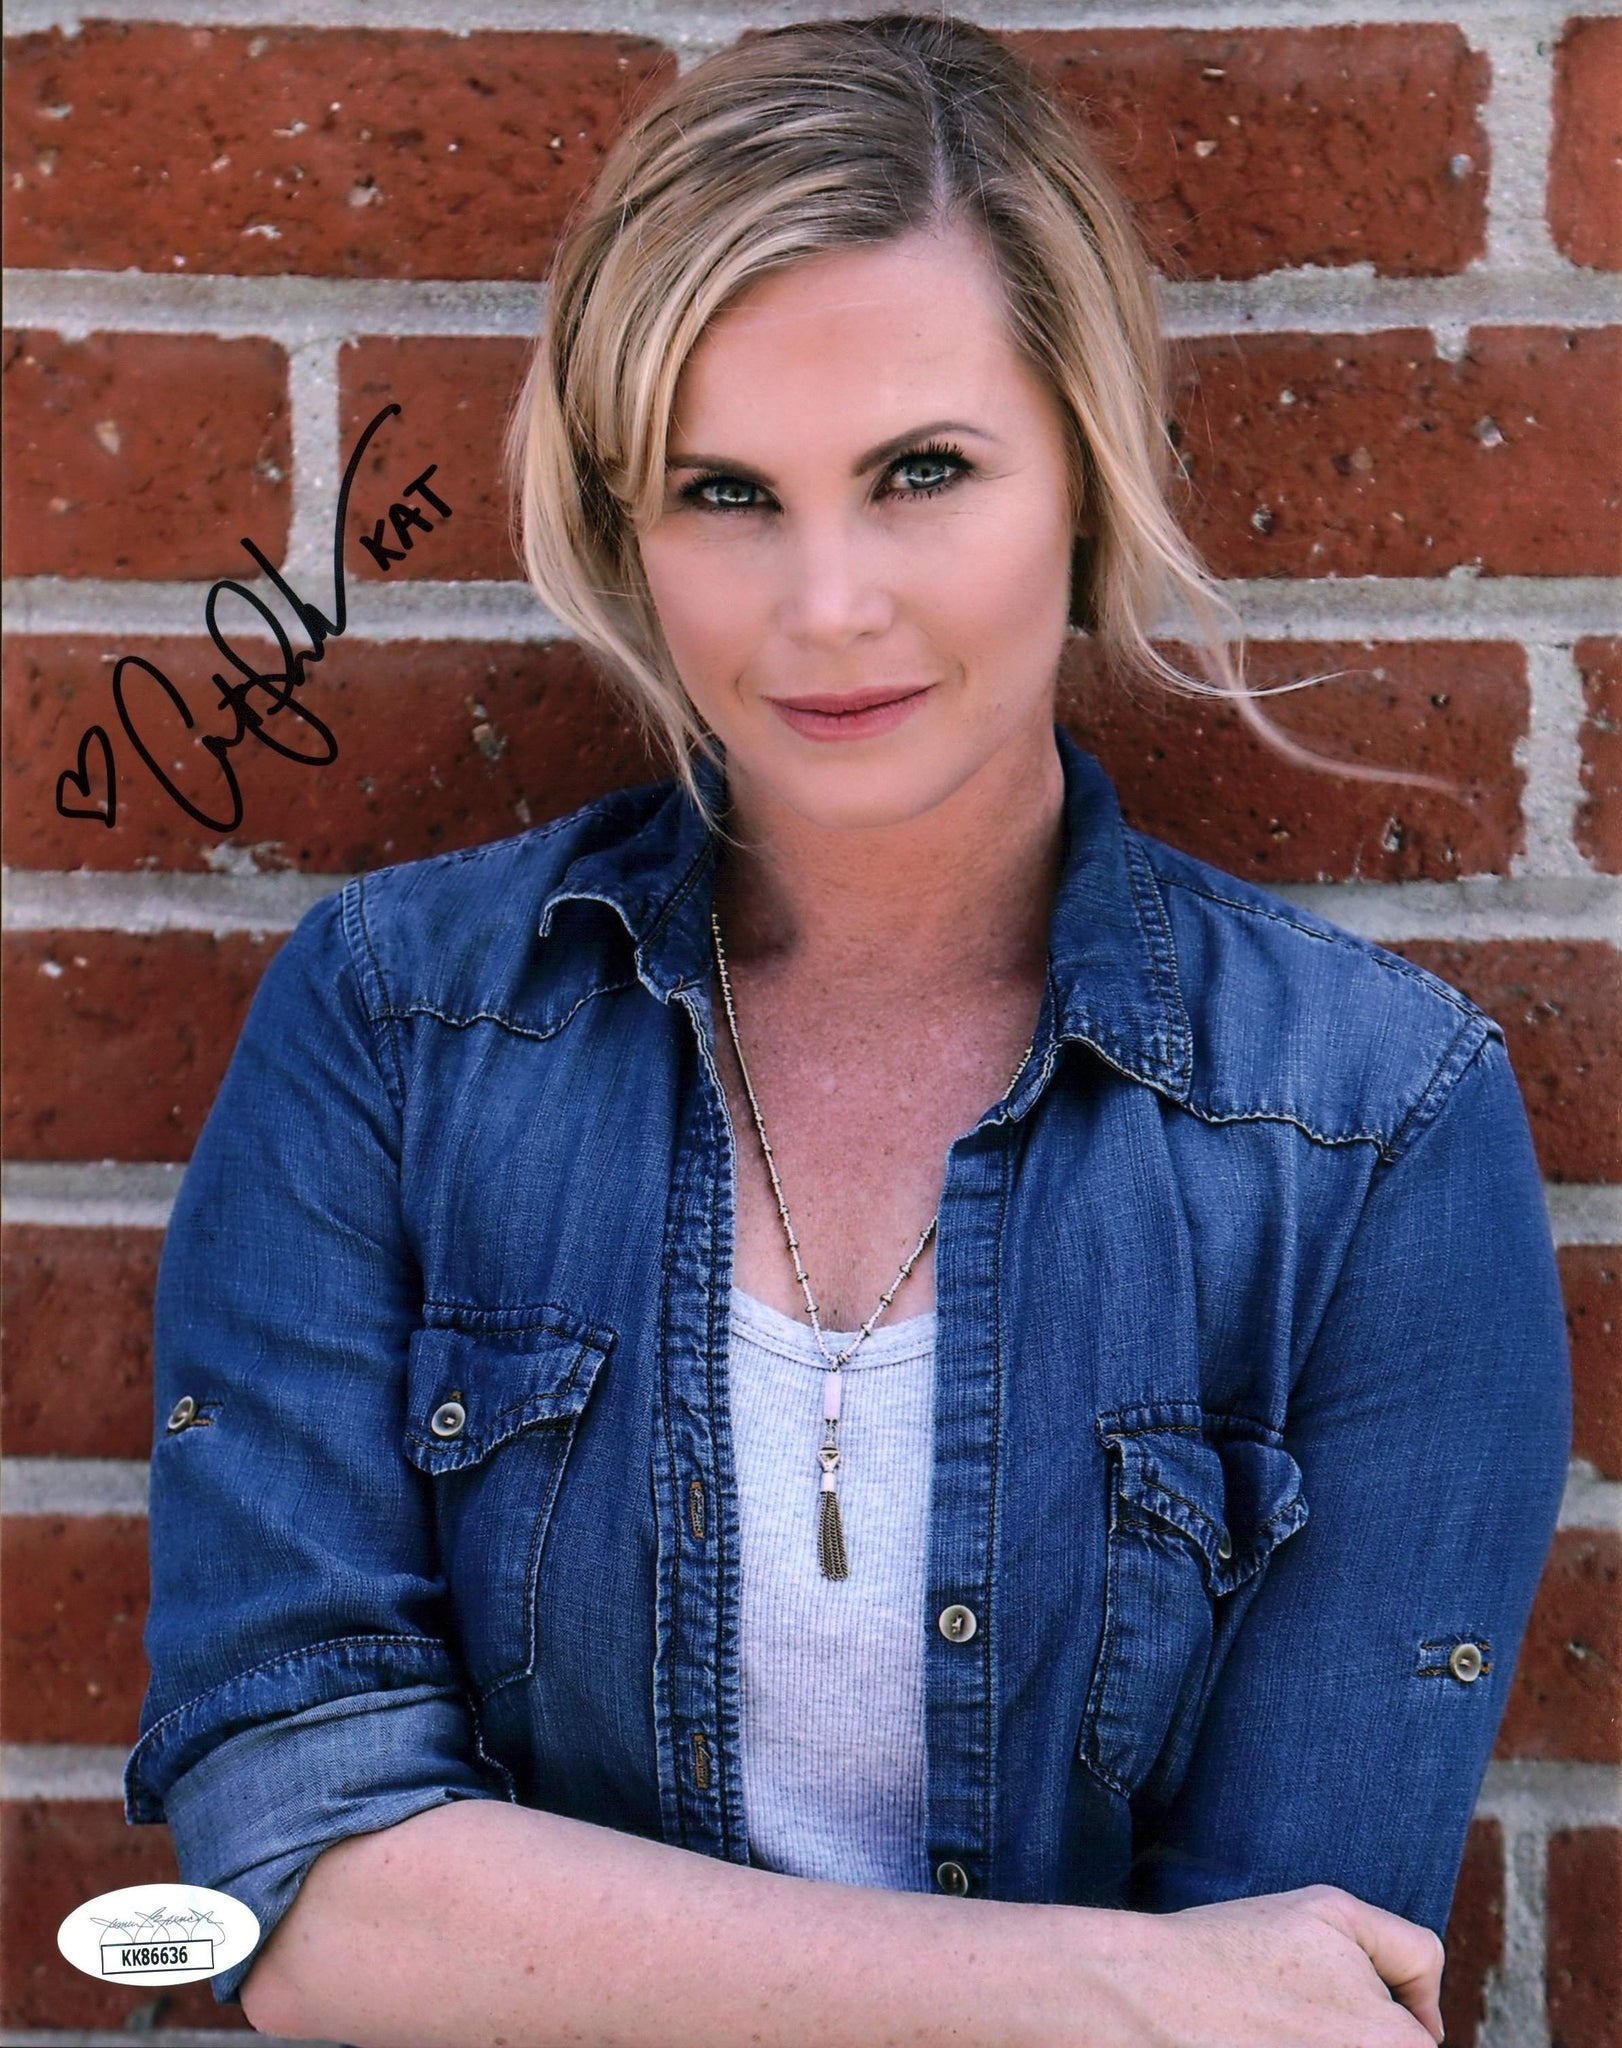 Catherine Sutherland Power Rangers 8x10 Photo Signed Autographed JSA Certified COA Auto GalaxyCon